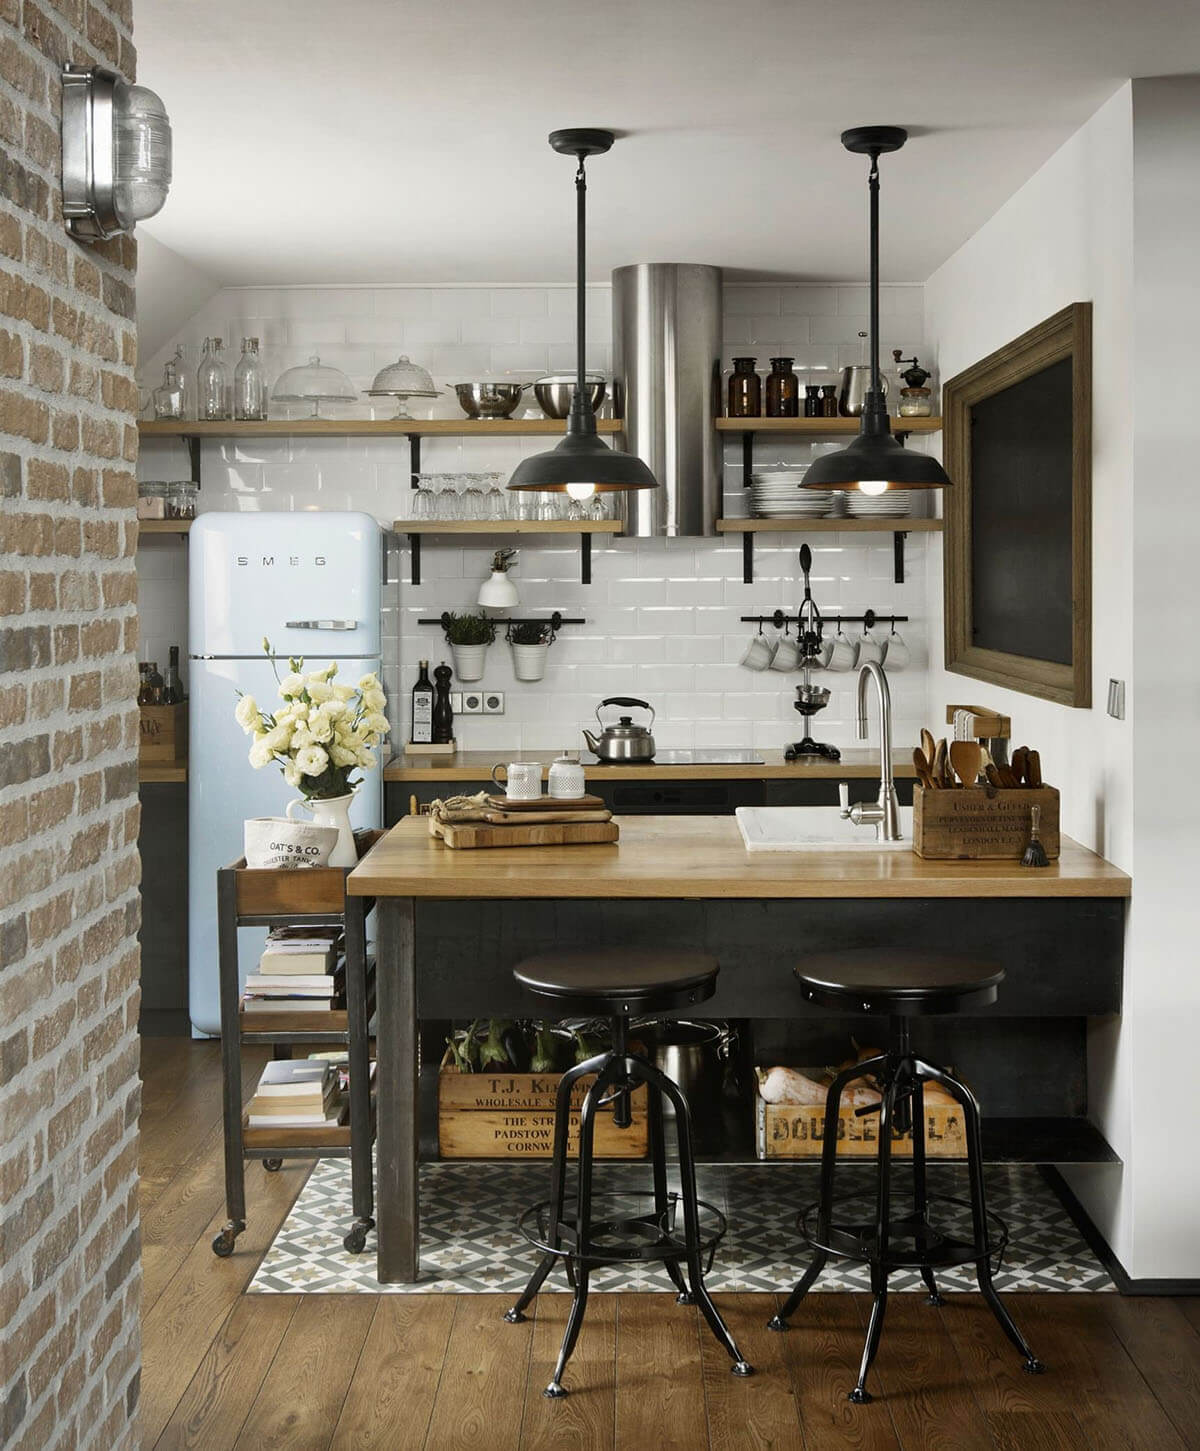 small kitchen decor cabico cabinets 30 best and design ideas for 2019 14 keeping rustic alive well